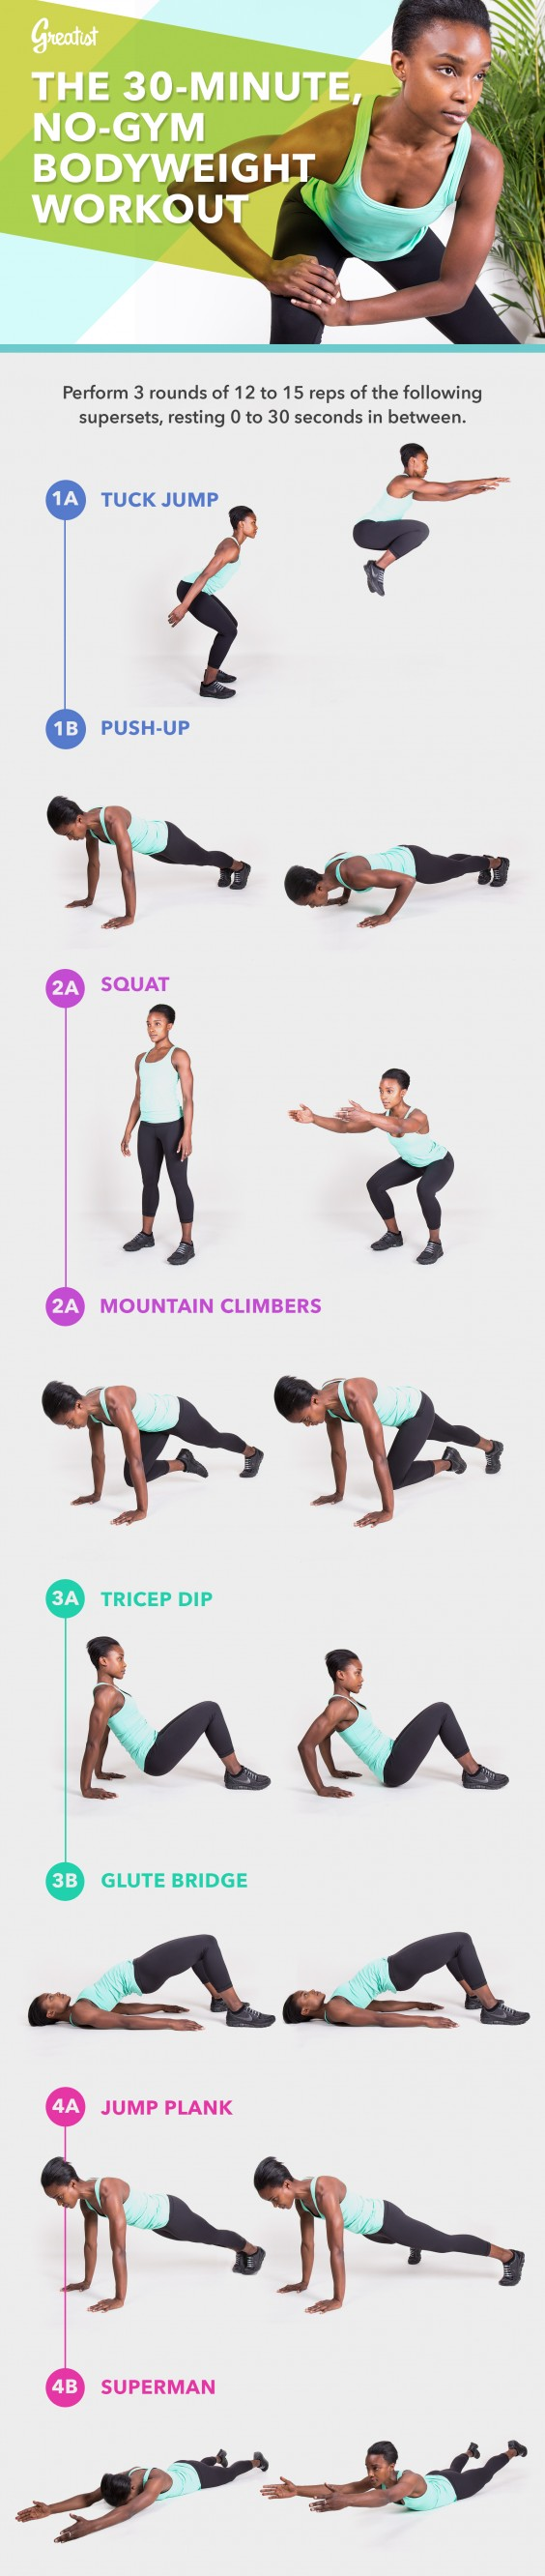 All you need is 30 minutes to break a sweat with this kick-butt bodyweight workout—anytime, anywhere.